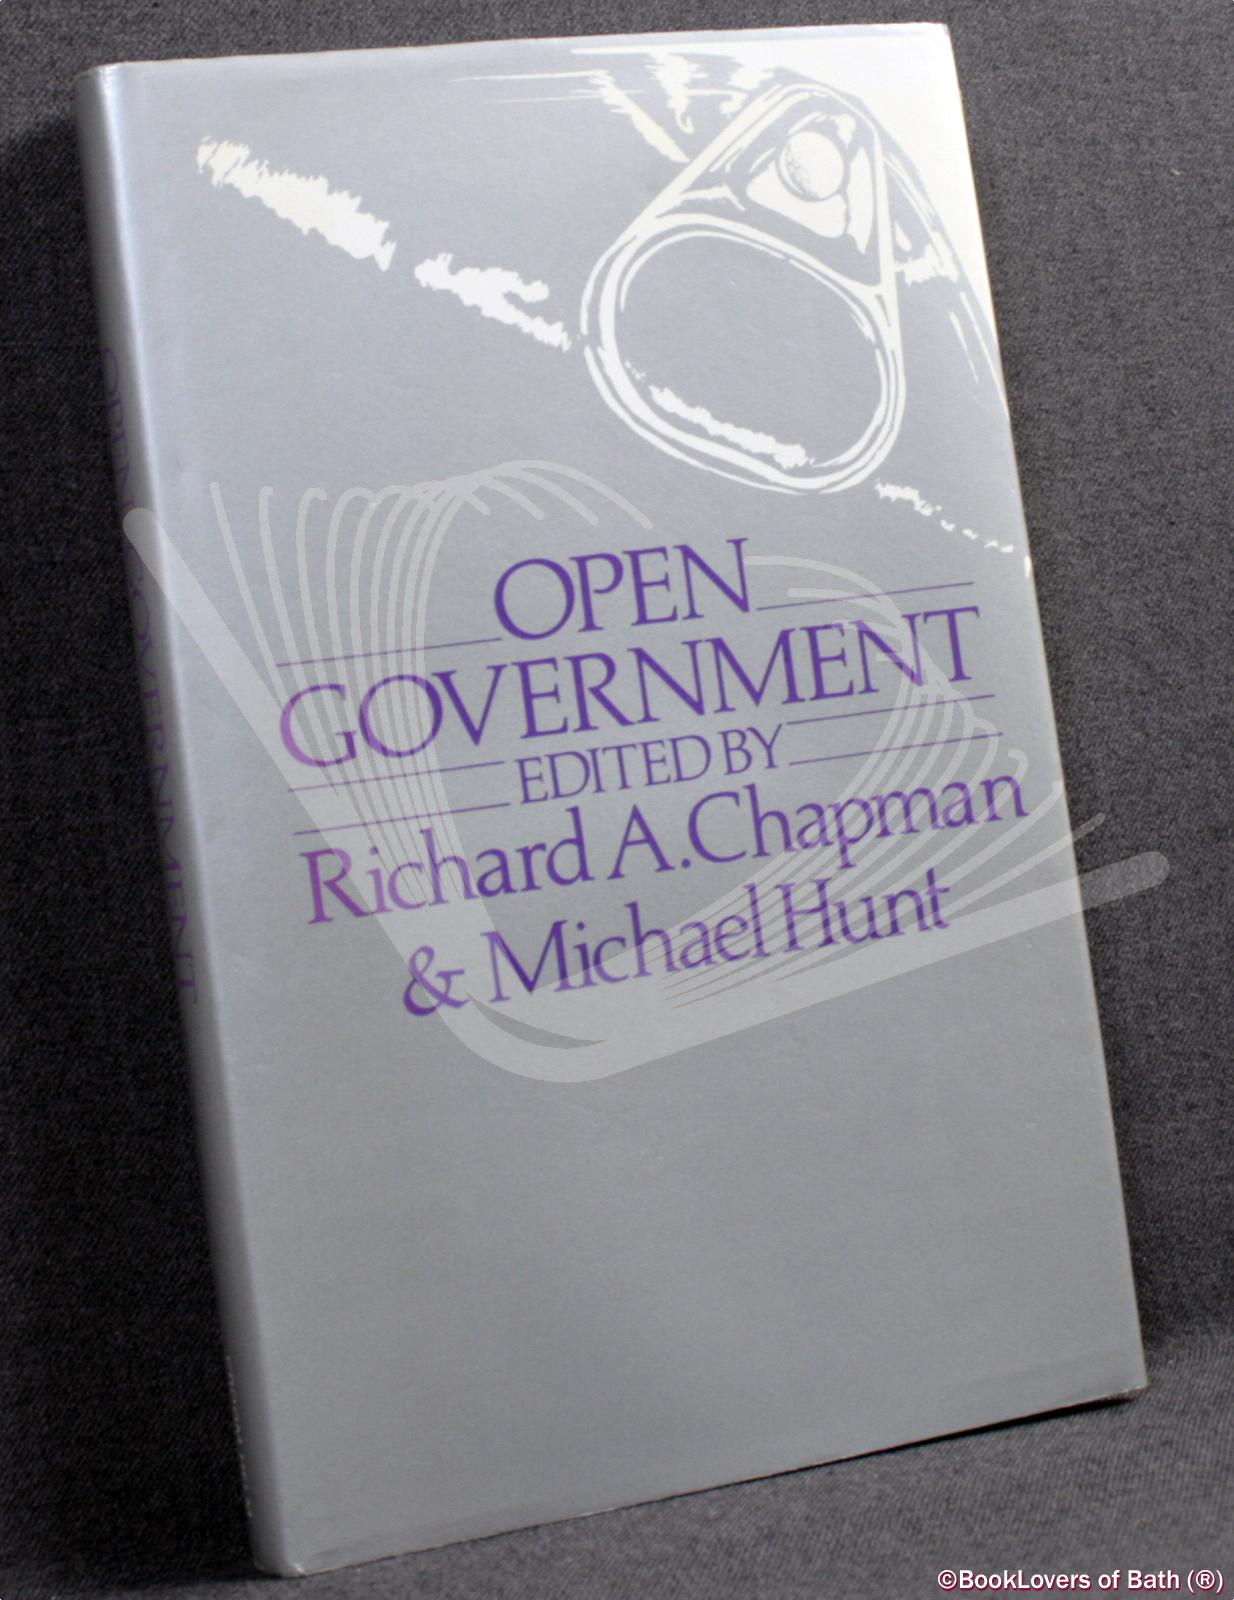 Open Government: A Study of the Prospects of Open Government Within the Limitations of the British Political System - Edited by Richard A. Chapman & Michael Hunt